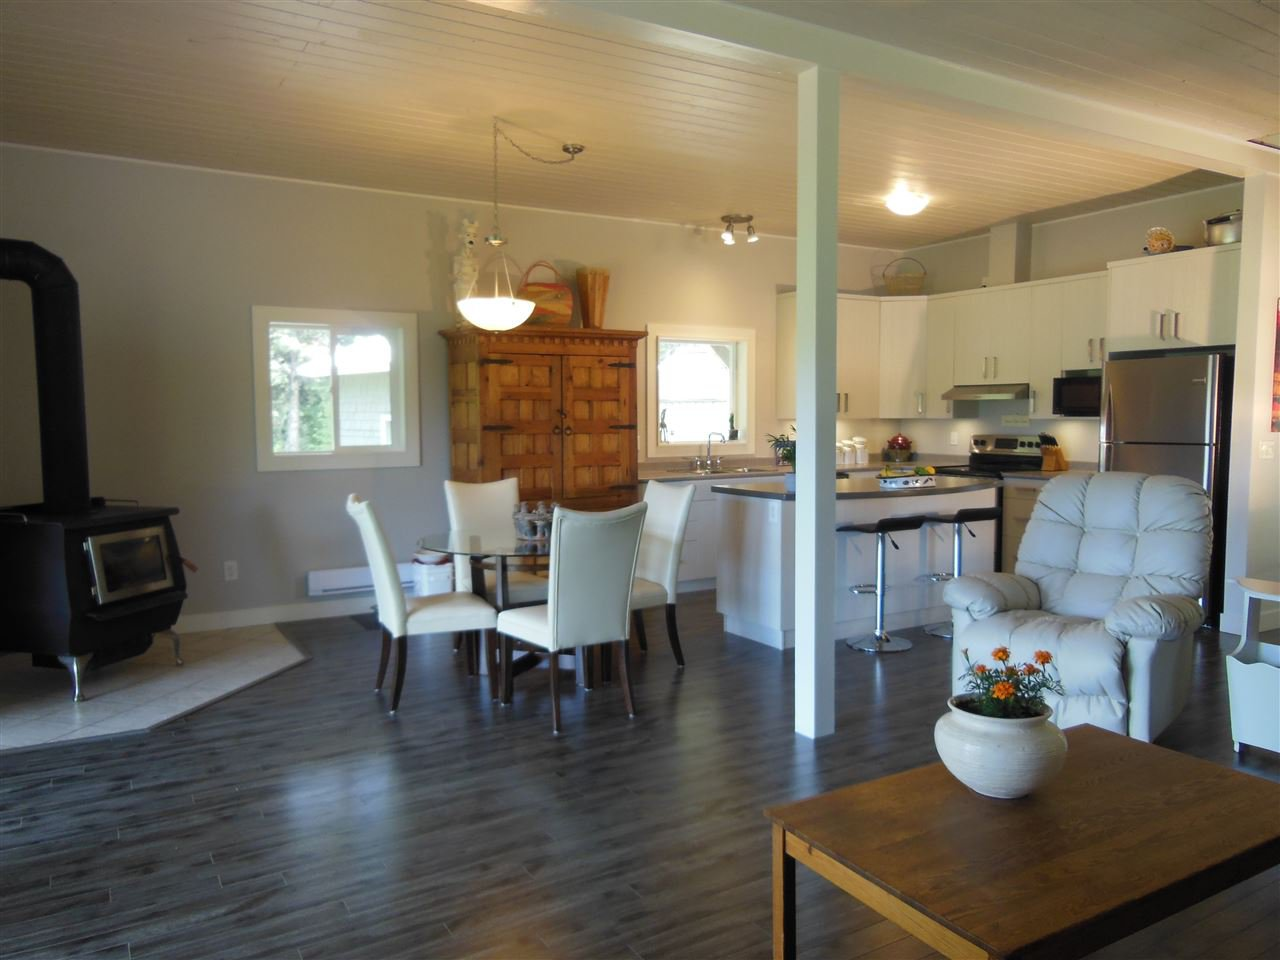 Photo 6: Photos: 3535 WESTWICK PIT Road: 150 Mile House House for sale (Williams Lake (Zone 27))  : MLS®# R2488772